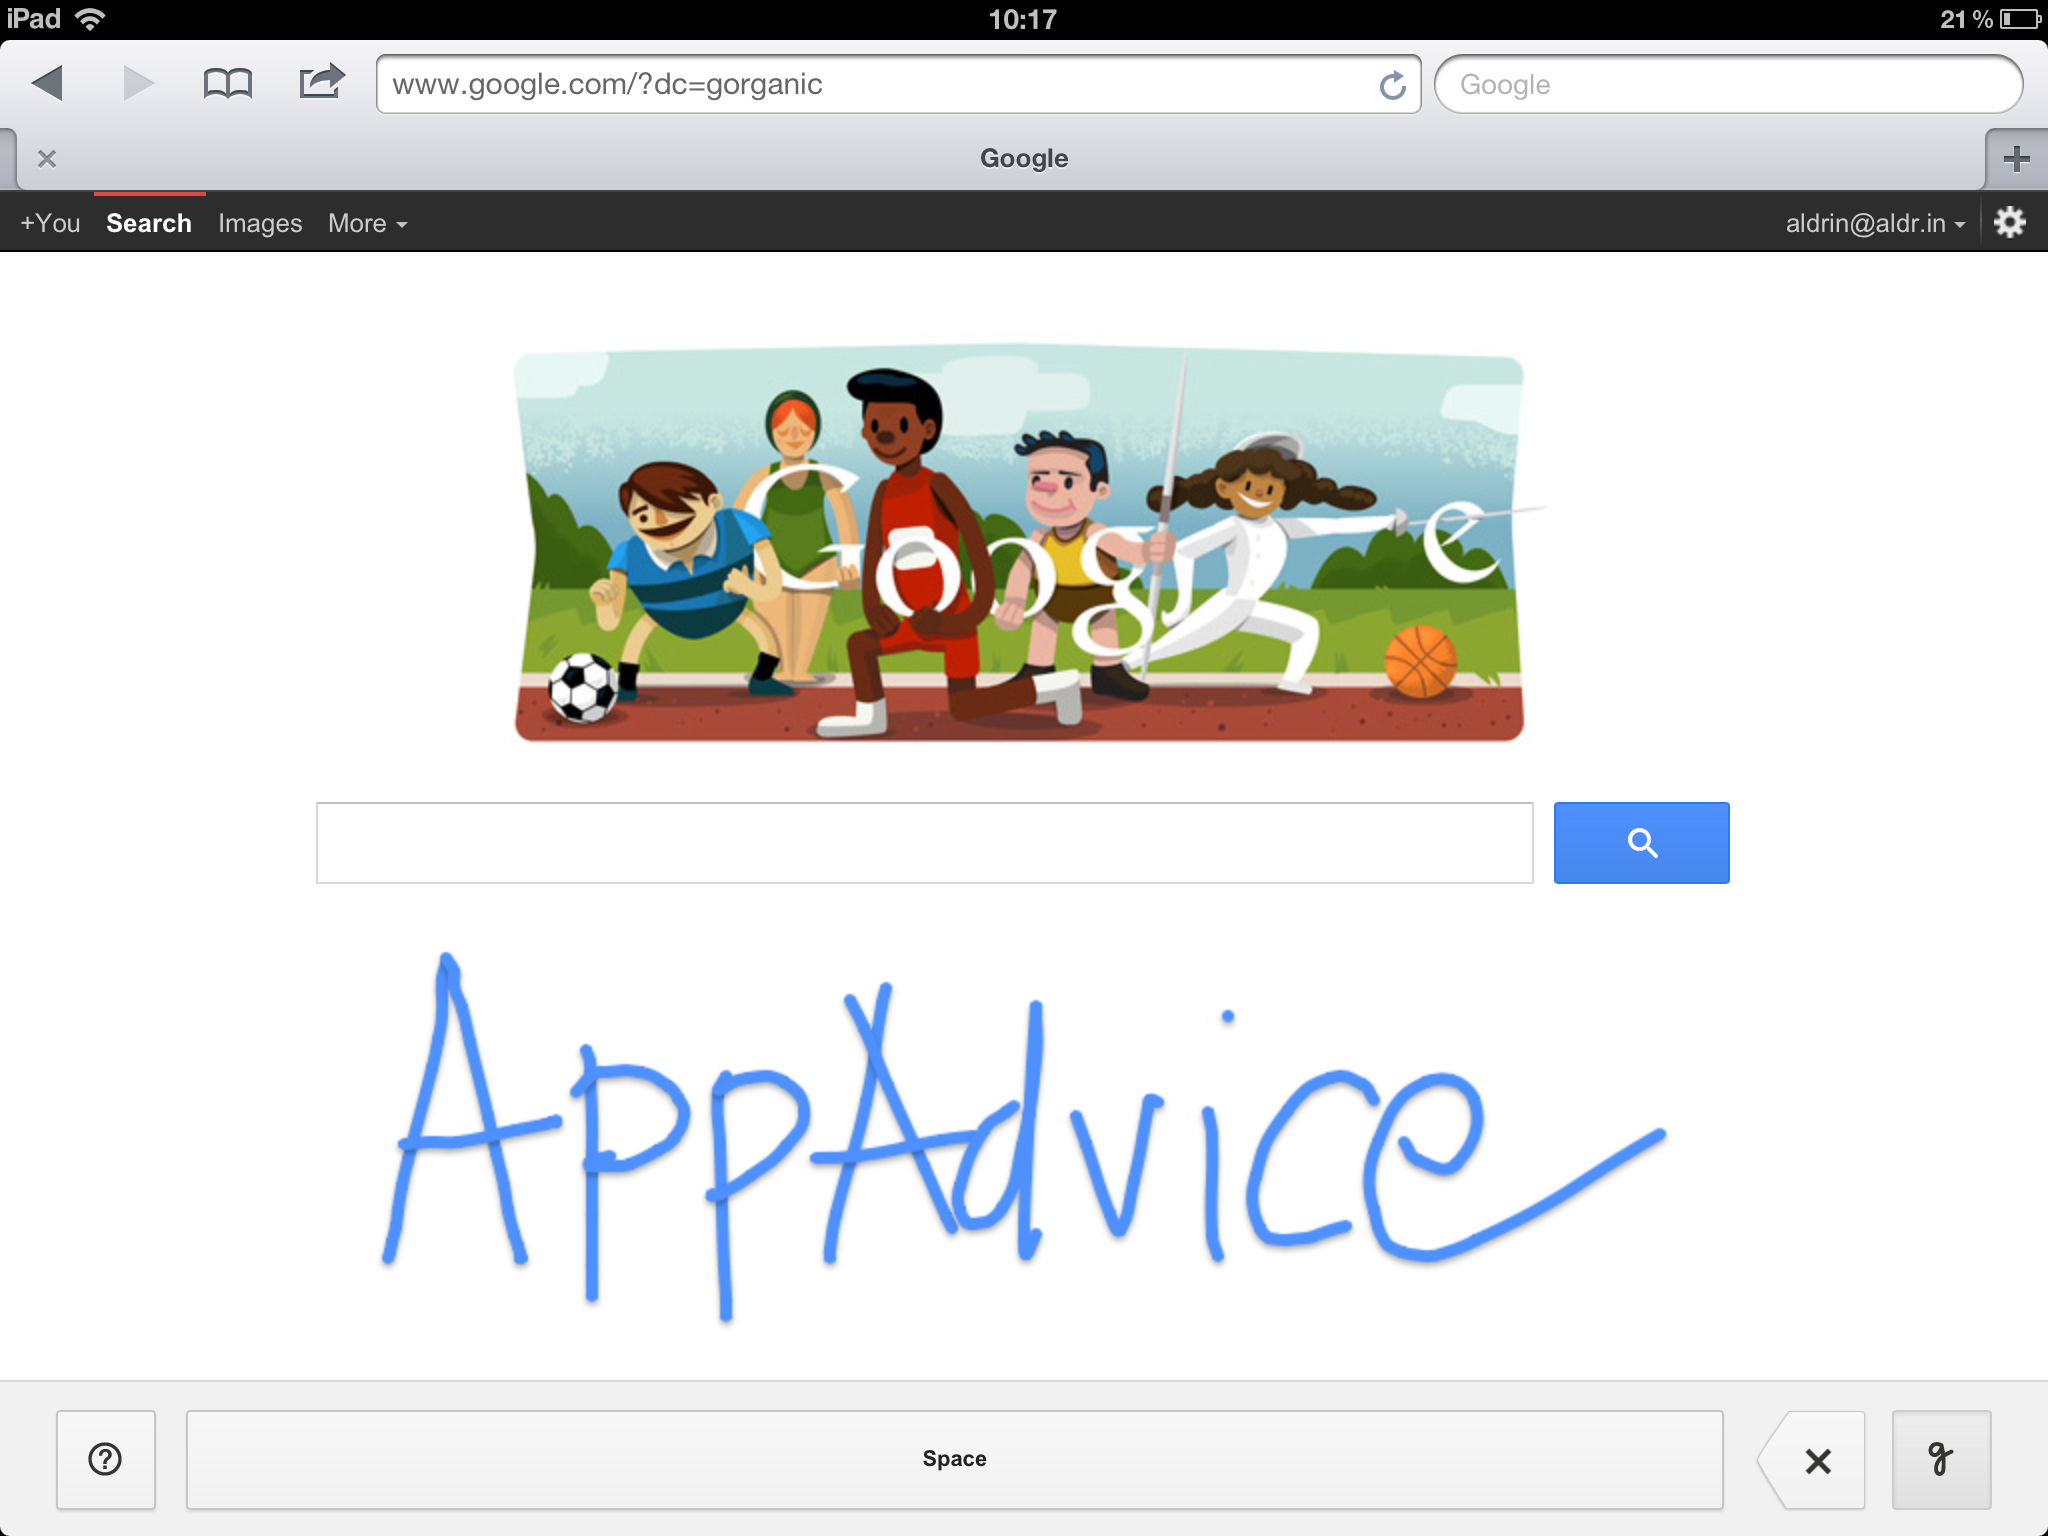 Google Now Lets You 'Handwrite' Your Search Queries On Your iDevice